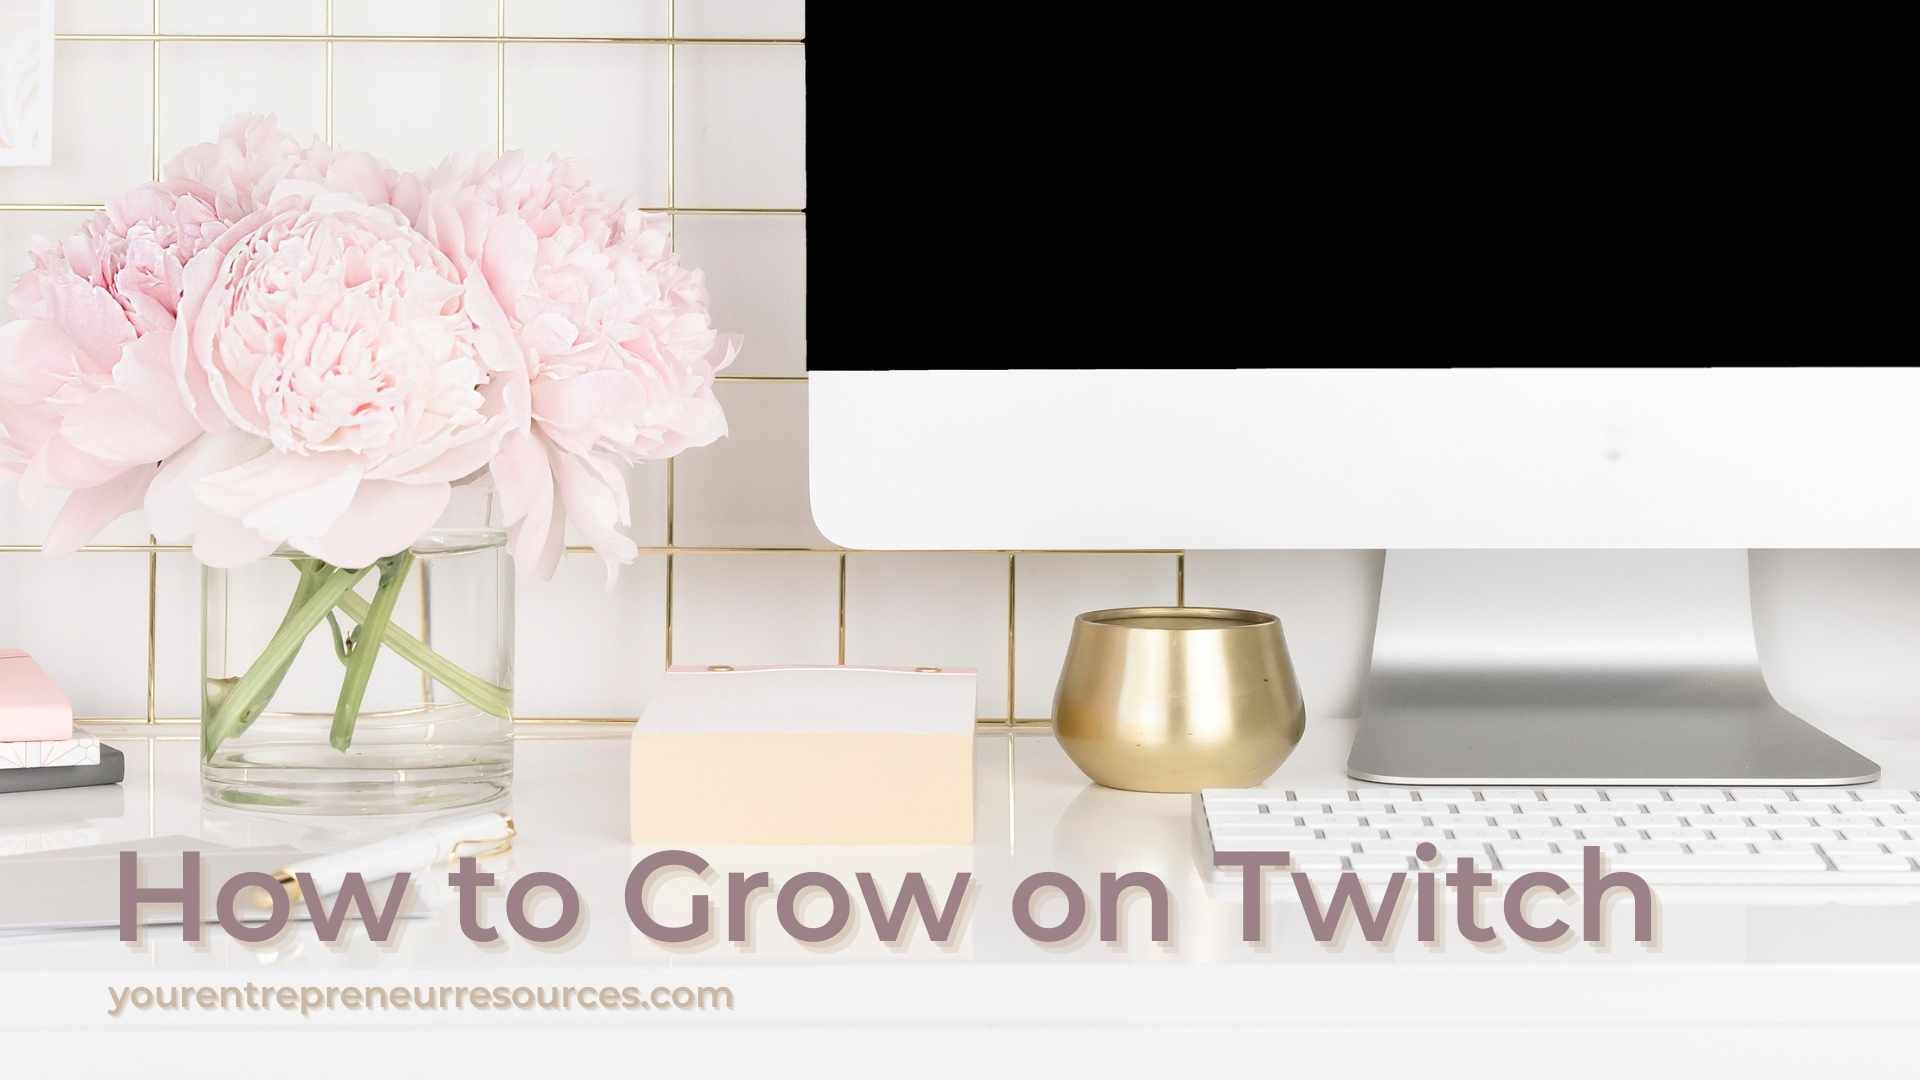 How-to-Grow-on-Twitch-5-Tips-for-live-streaming-and-grow-twitch-channel